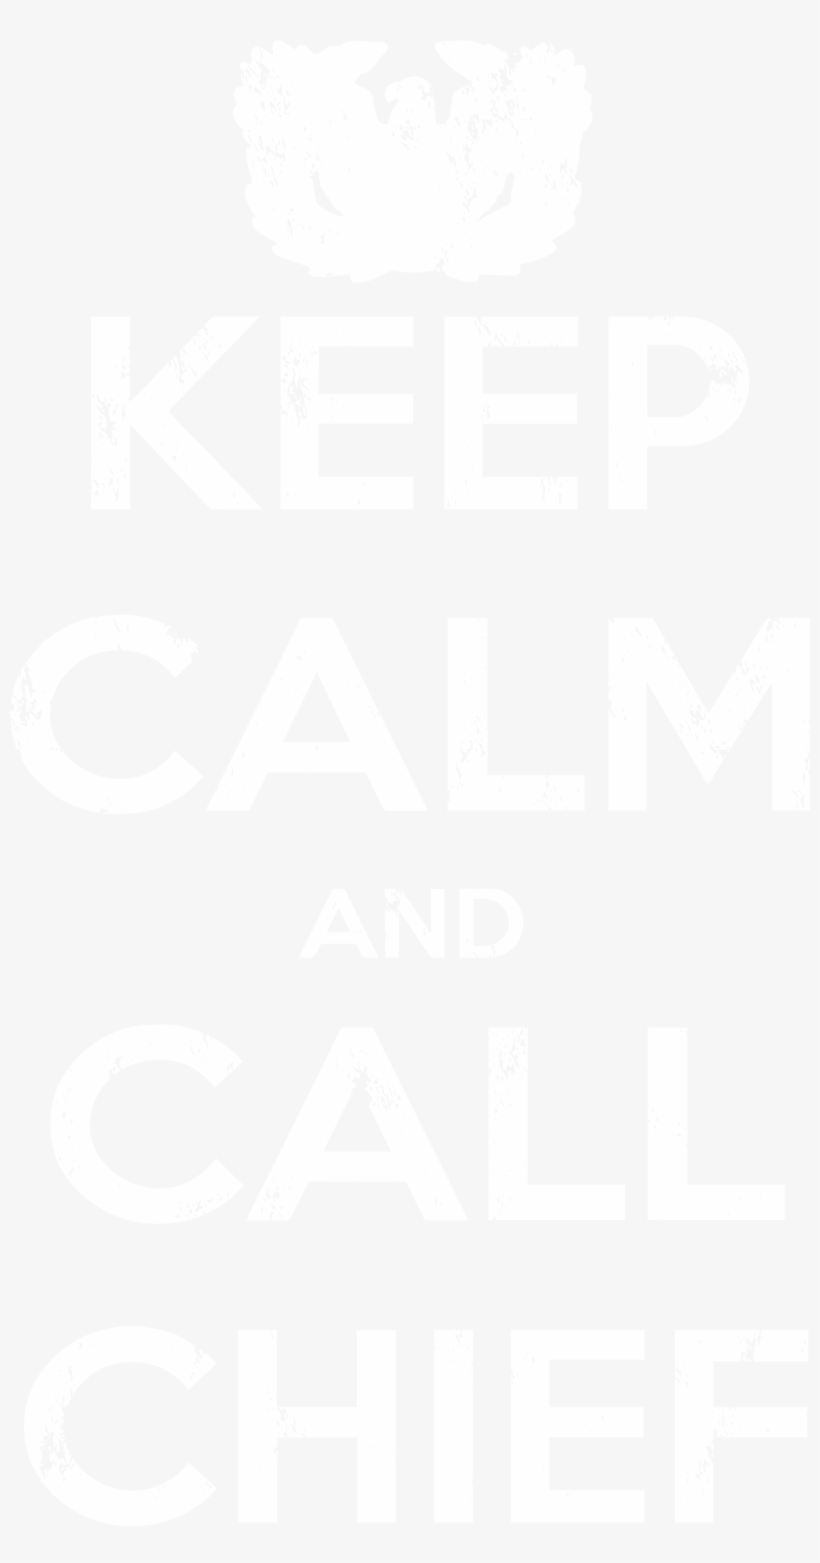 White Kccc White Eagle Rising Grunge - Keep Calm And Carry, transparent png #2630072